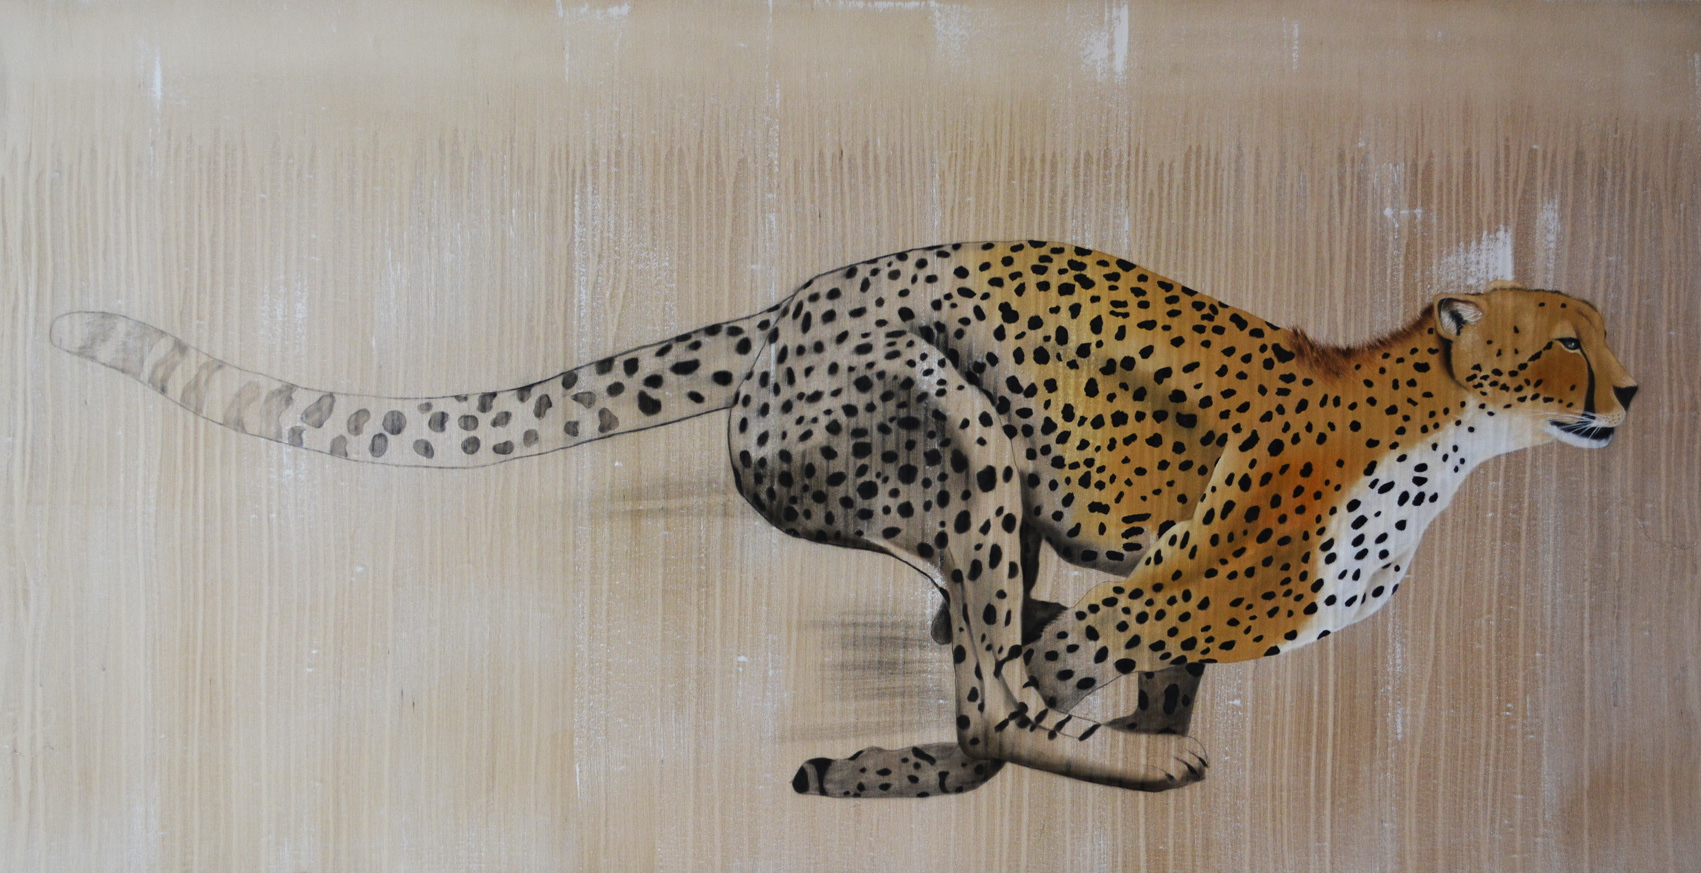 ACYNONYX-JUBATUS cheetah-acynonyx-jubatus-delete-threatened-endangered-extinction Thierry Bisch painter animals painting art decoration hotel design interior luxury nature biodiversity conservation